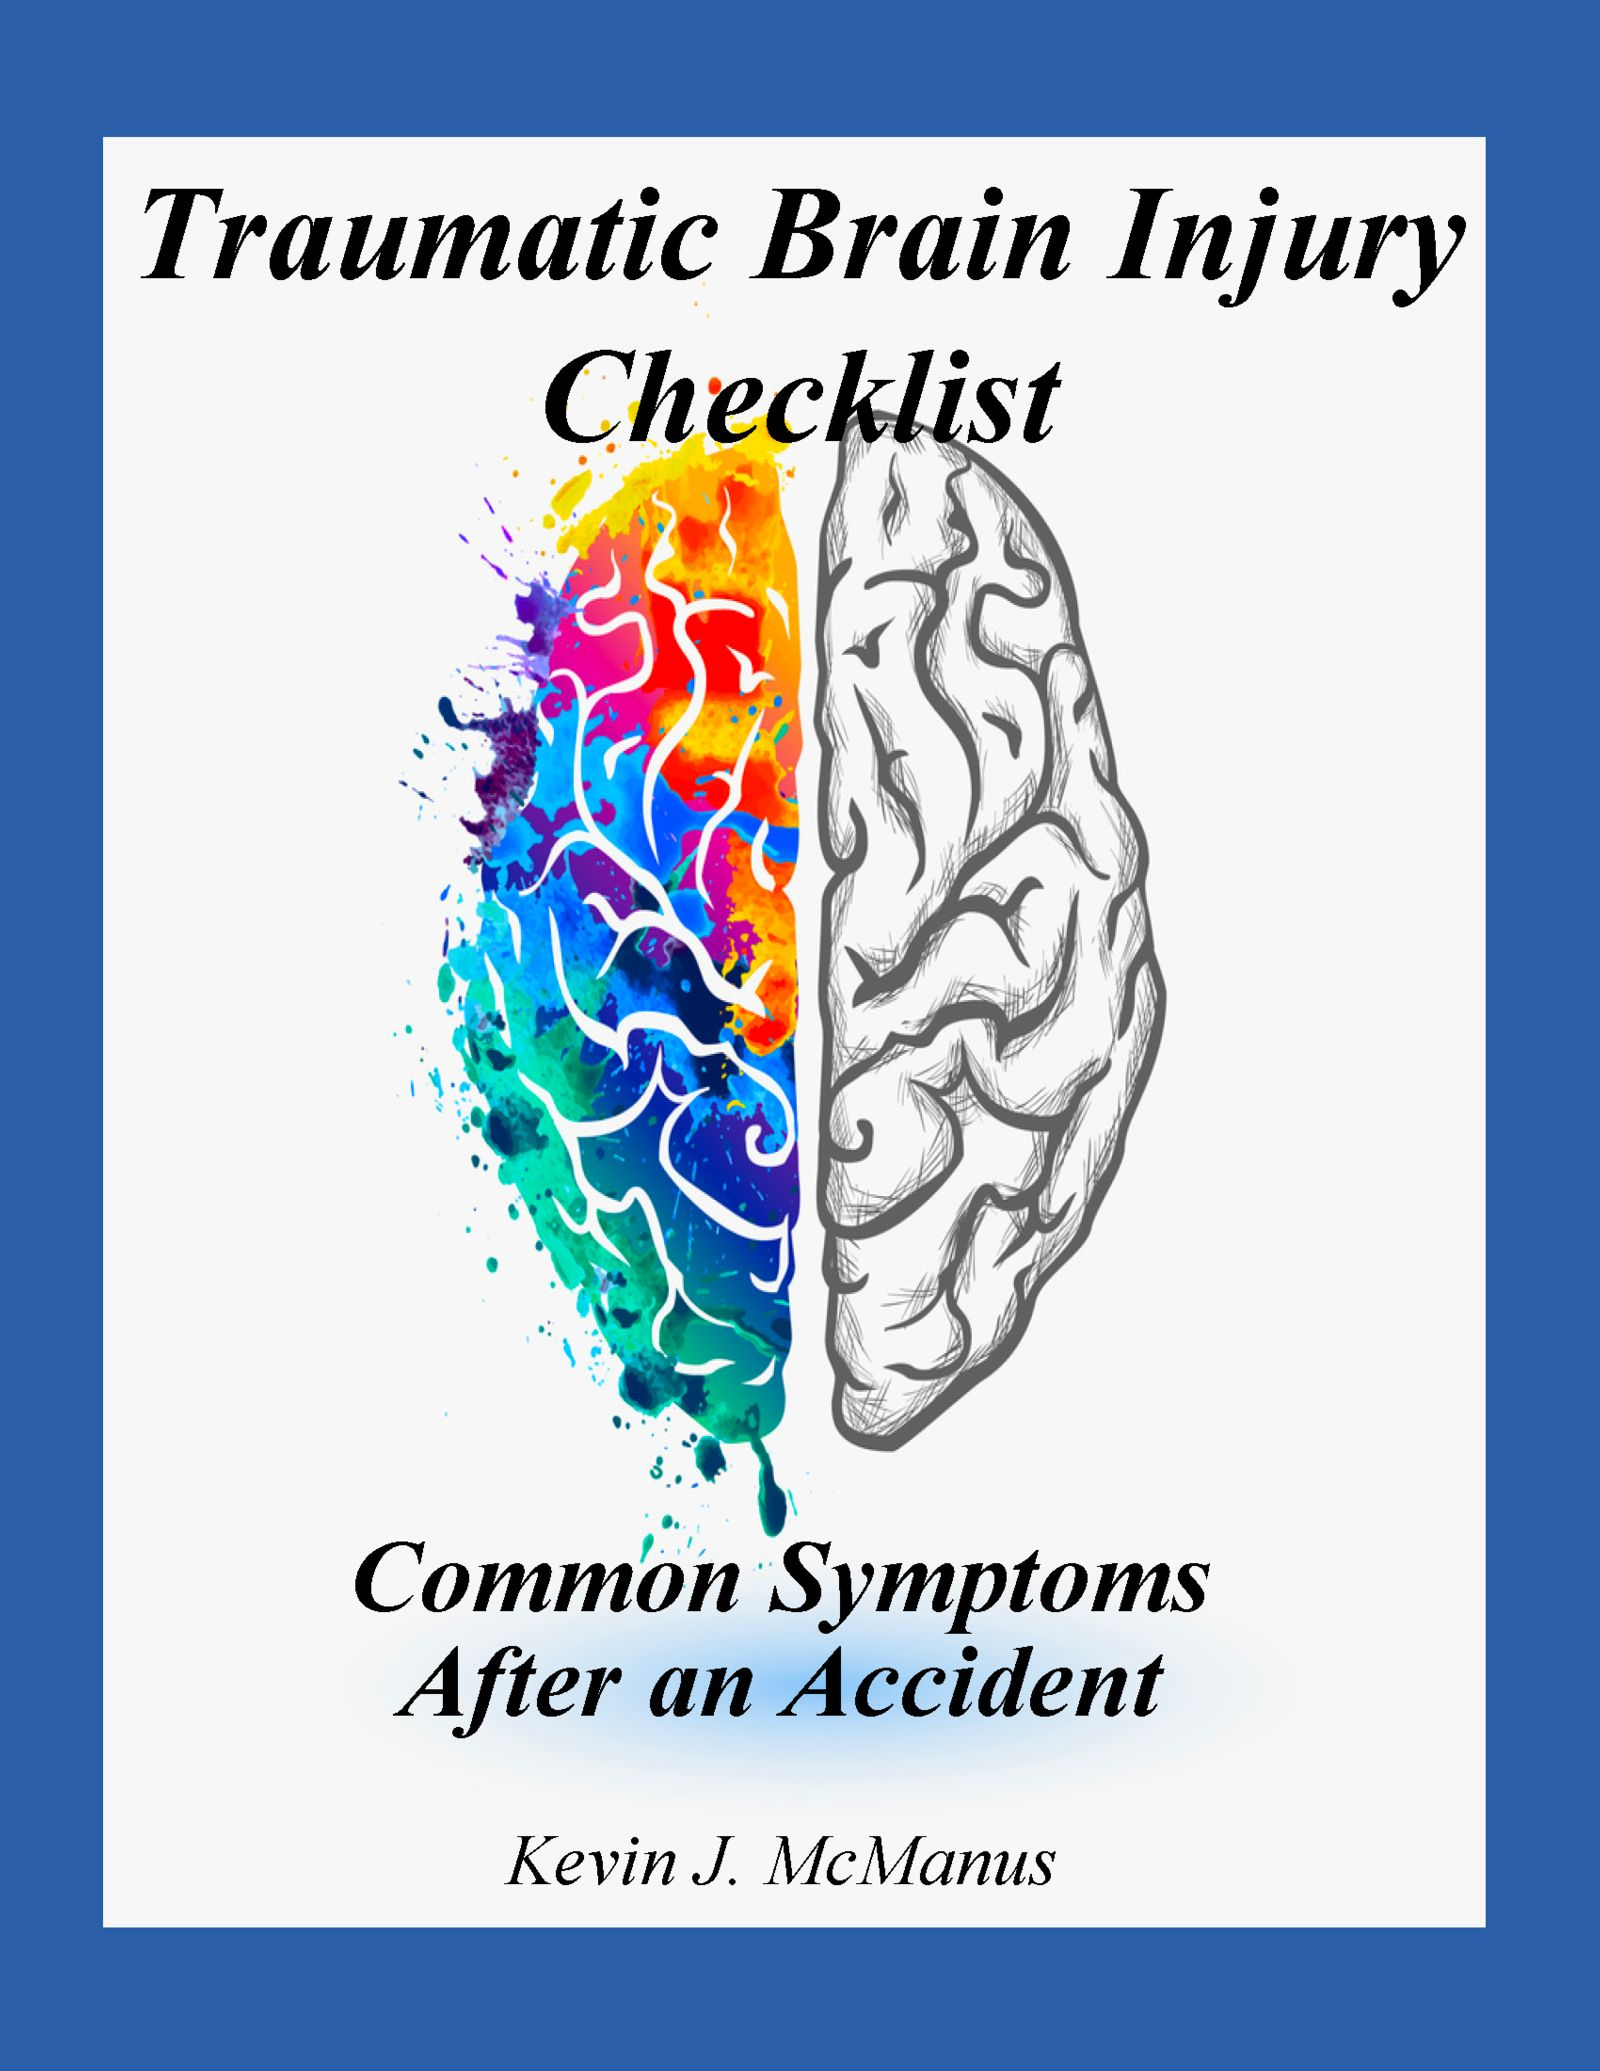 Brain injury checklist by Kansas City brain injury lawyer